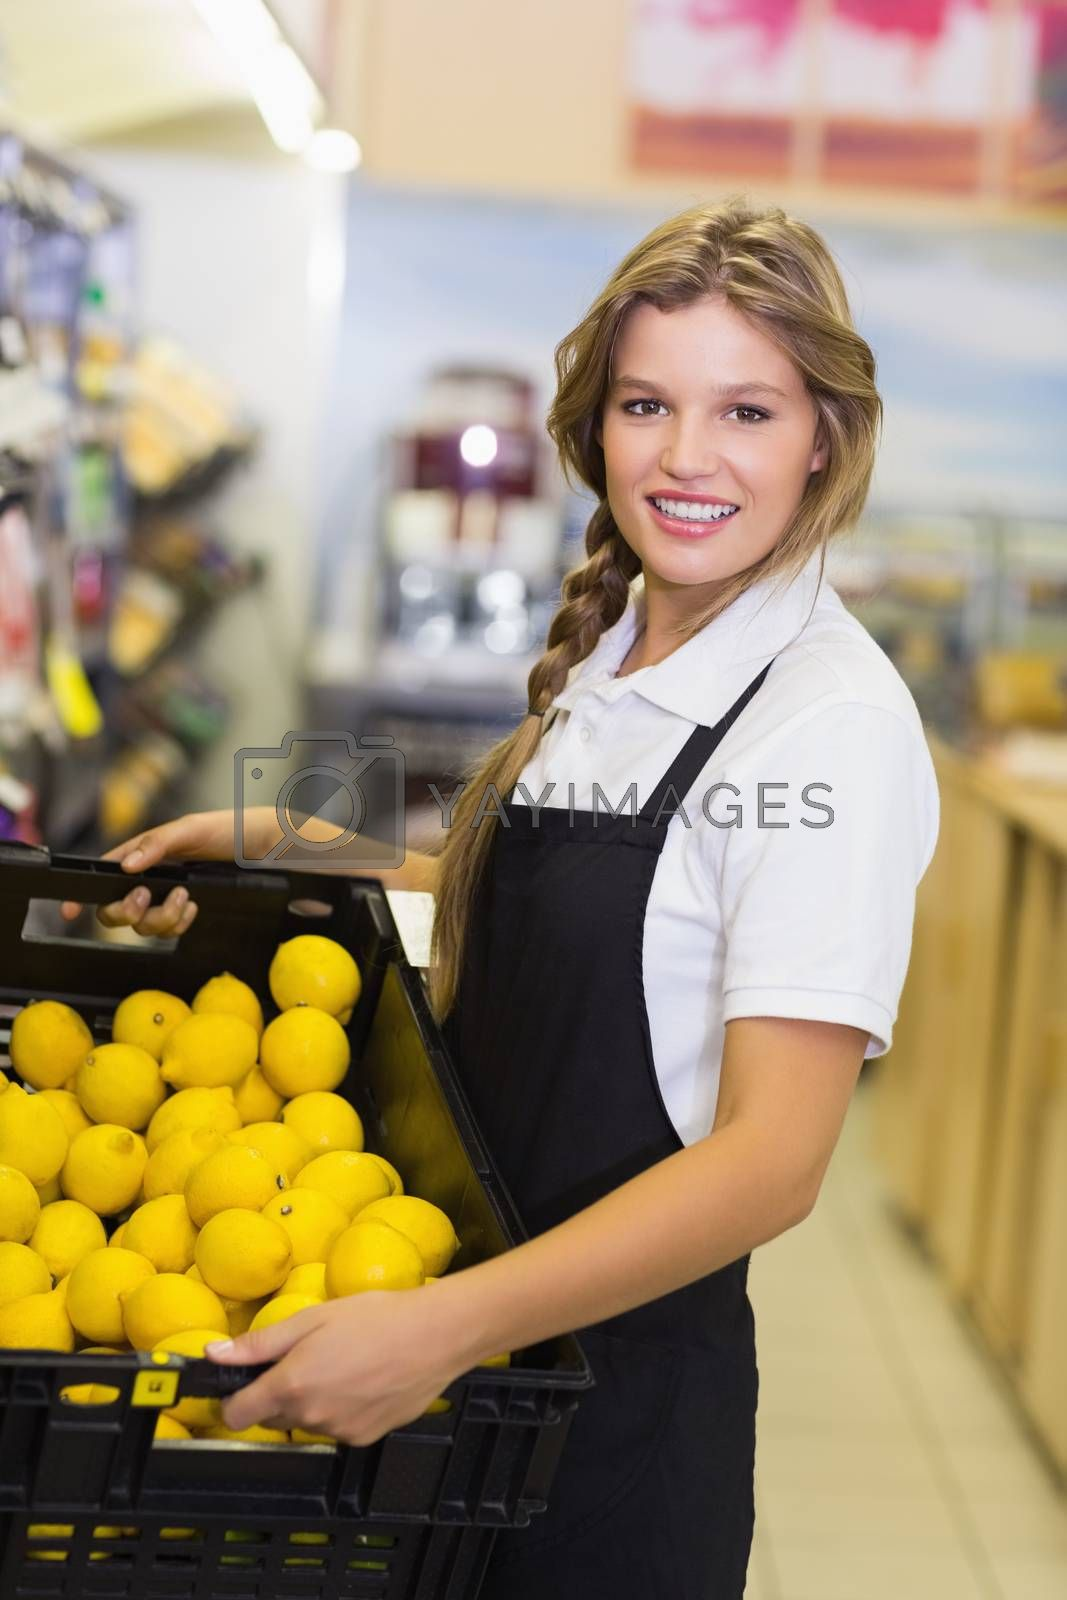 Royalty free image of Portrait of a staff woman holding a box with a fresh vegetables  by Wavebreakmedia